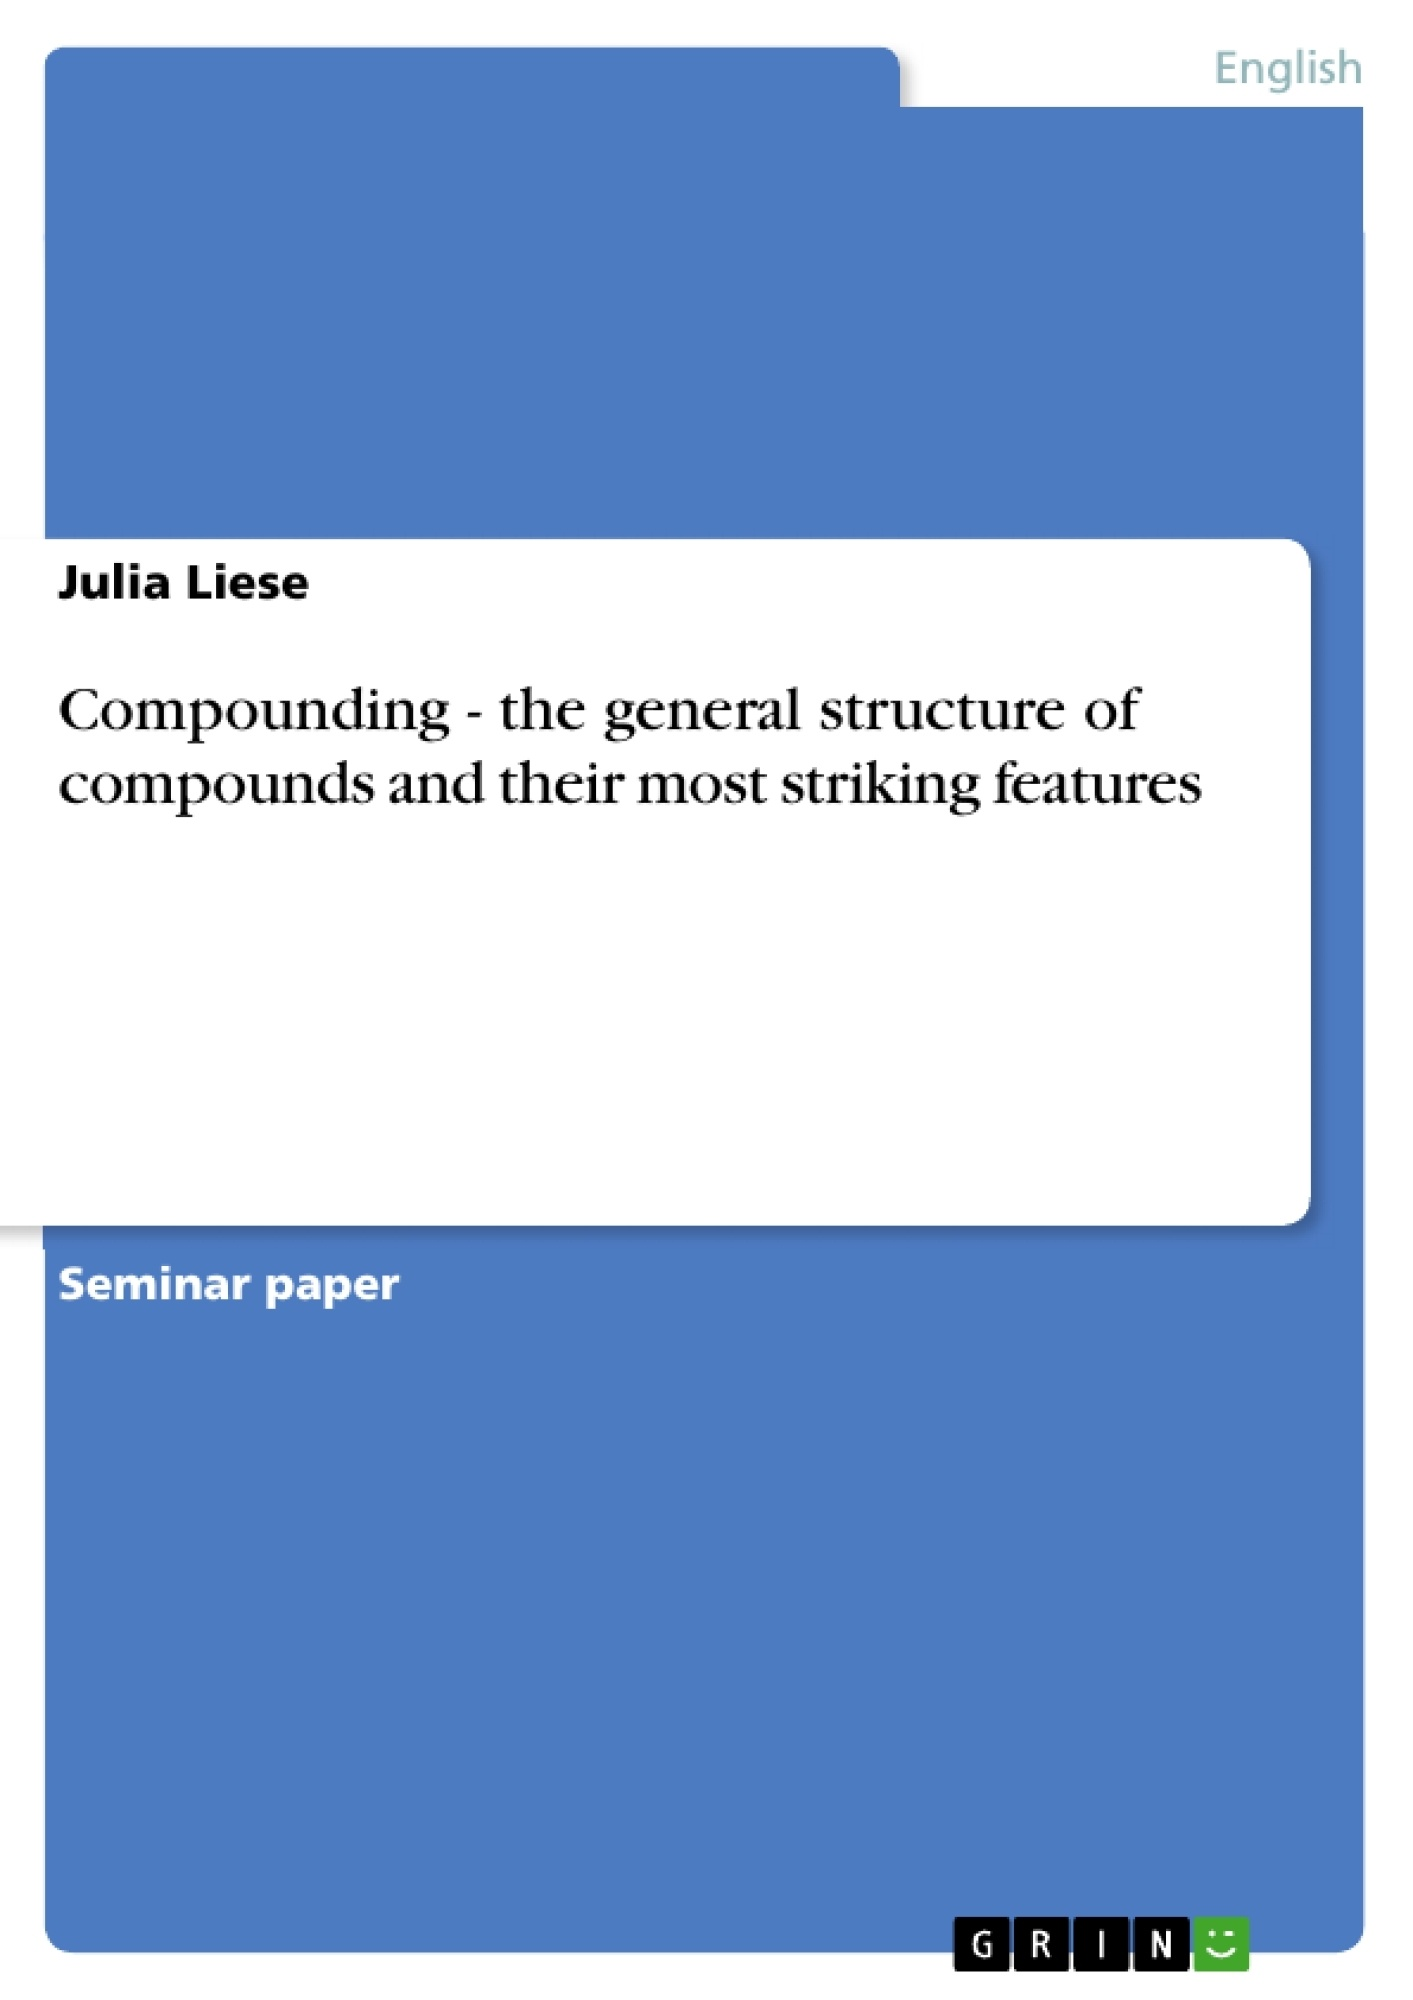 Title: Compounding - the general structure of compounds and their most striking features